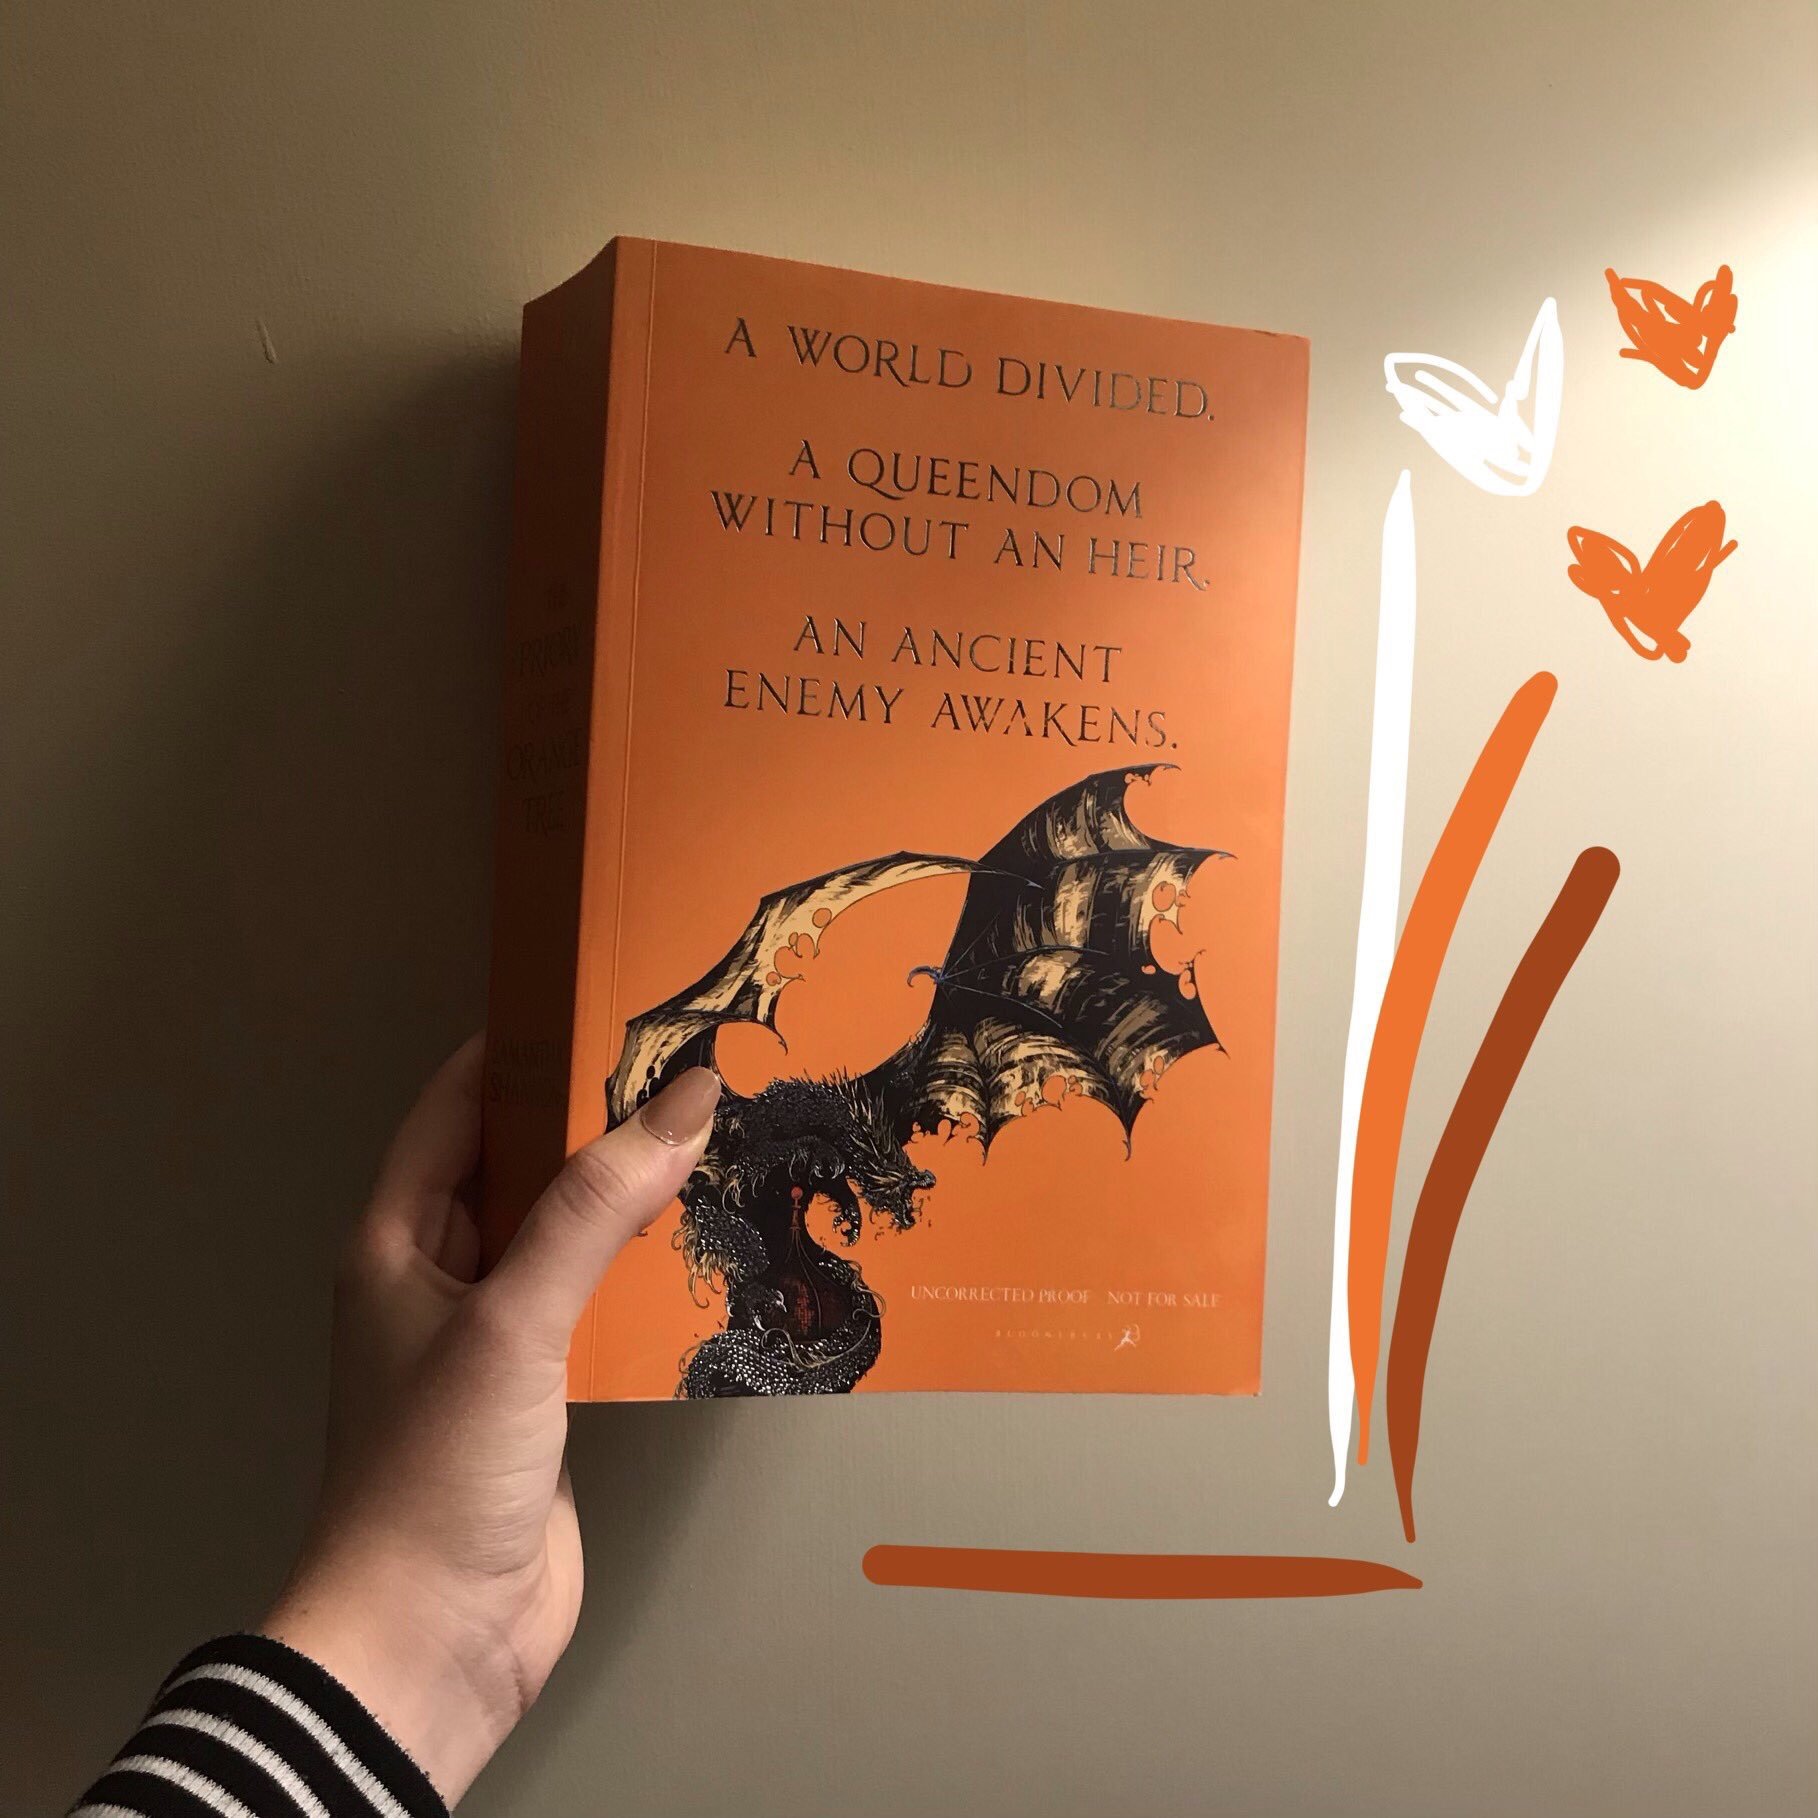 ARC of The Priory of the Orange Tree by Samantha Shannon